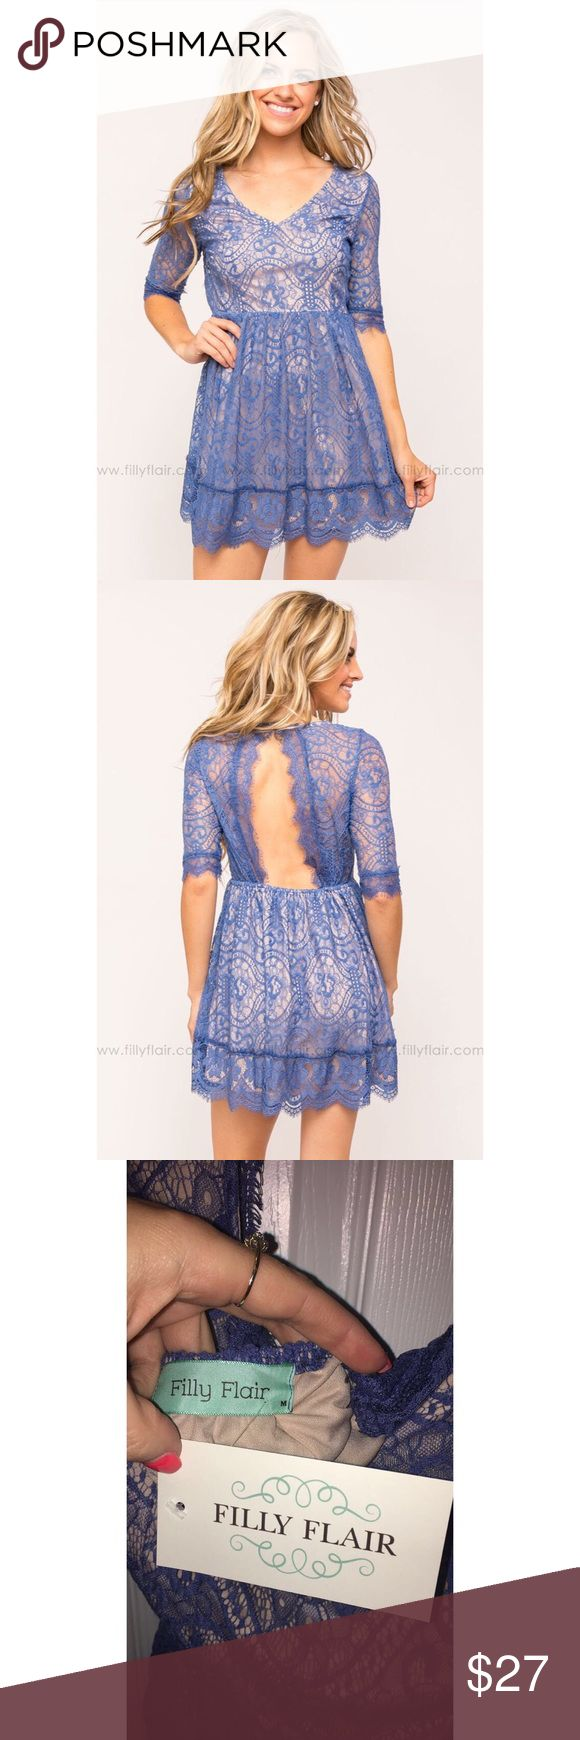 Filly Flair Cut-Out Back Dress Blue-Medium Cute summer dress from Filly Flair! Never worn-tags still attached!! 💙 Blue, size Medium Filly Flair Dresses Midi